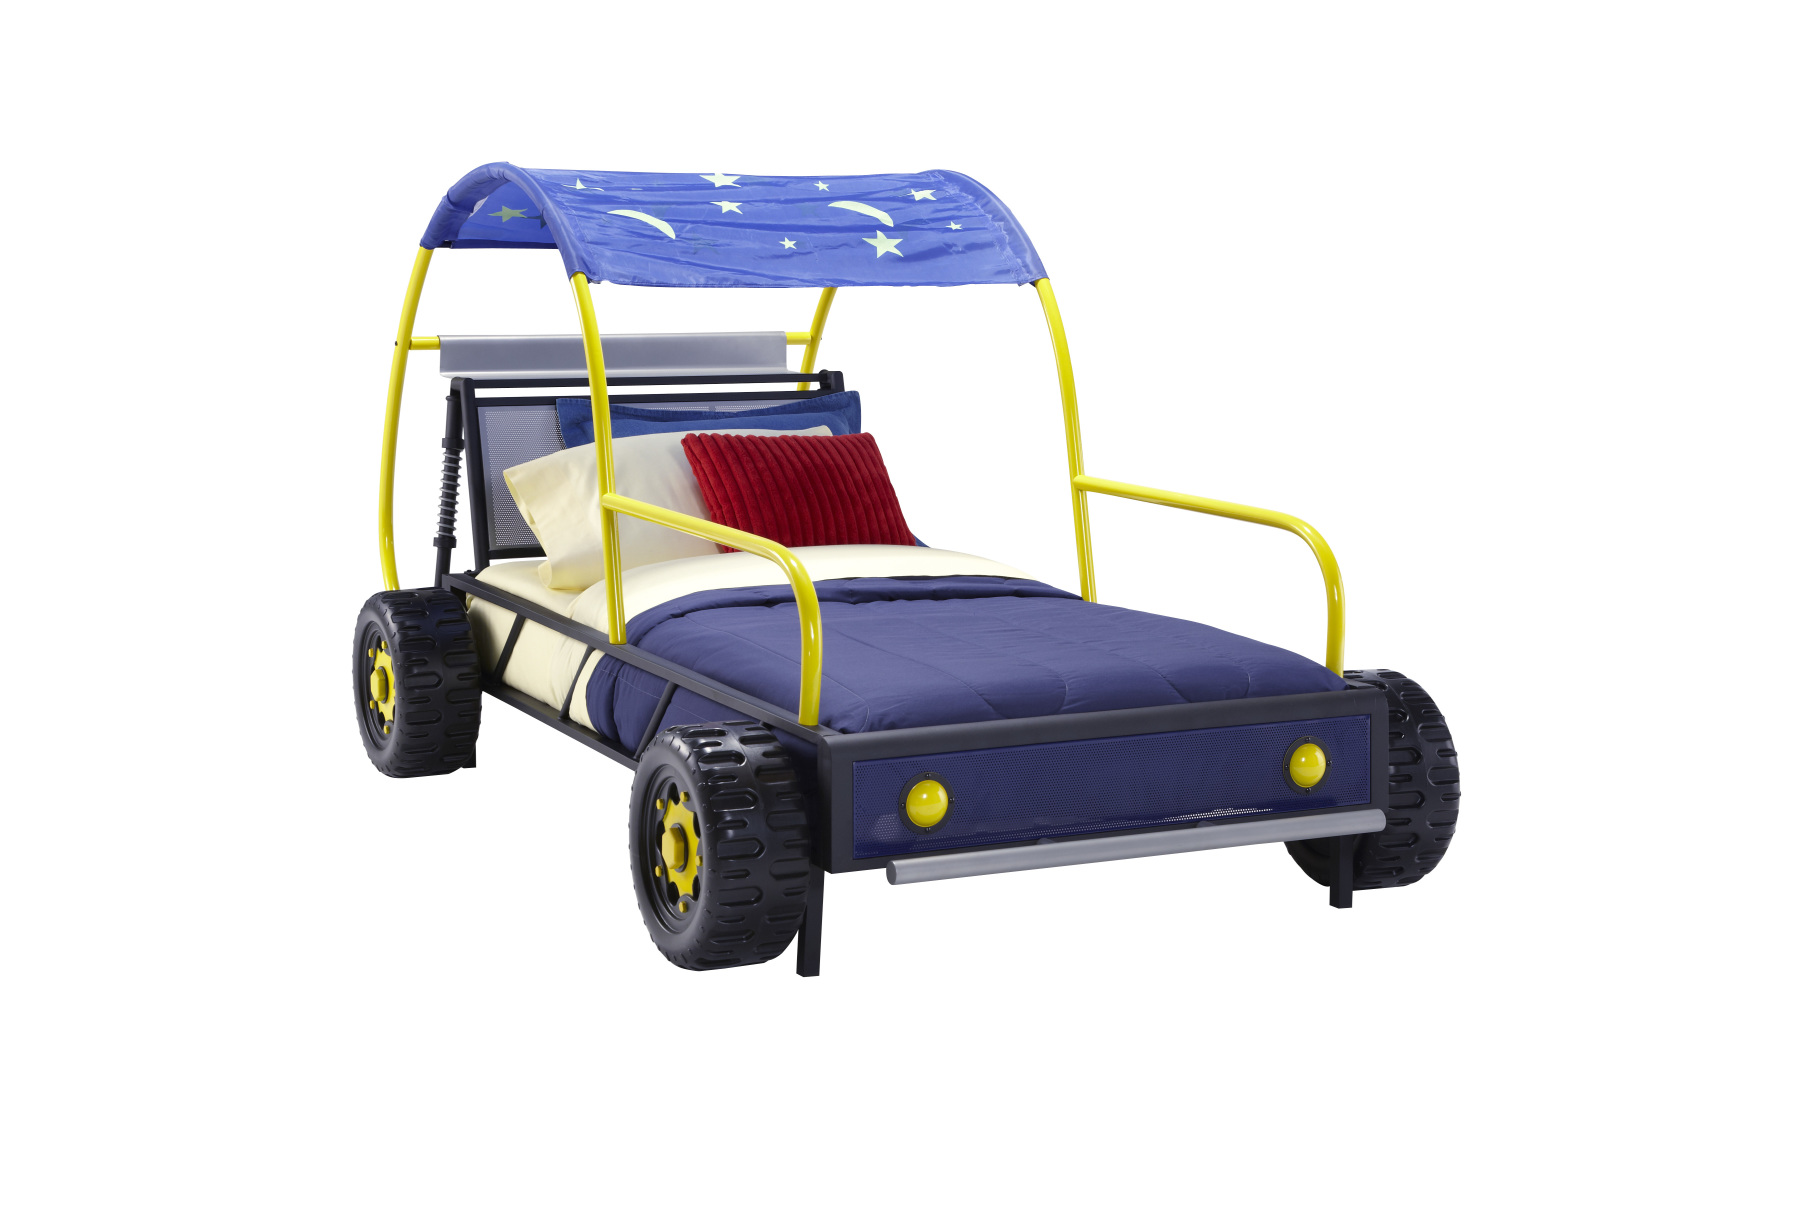 Dune Buggy Car Twin Bed-ships in 2 cartons